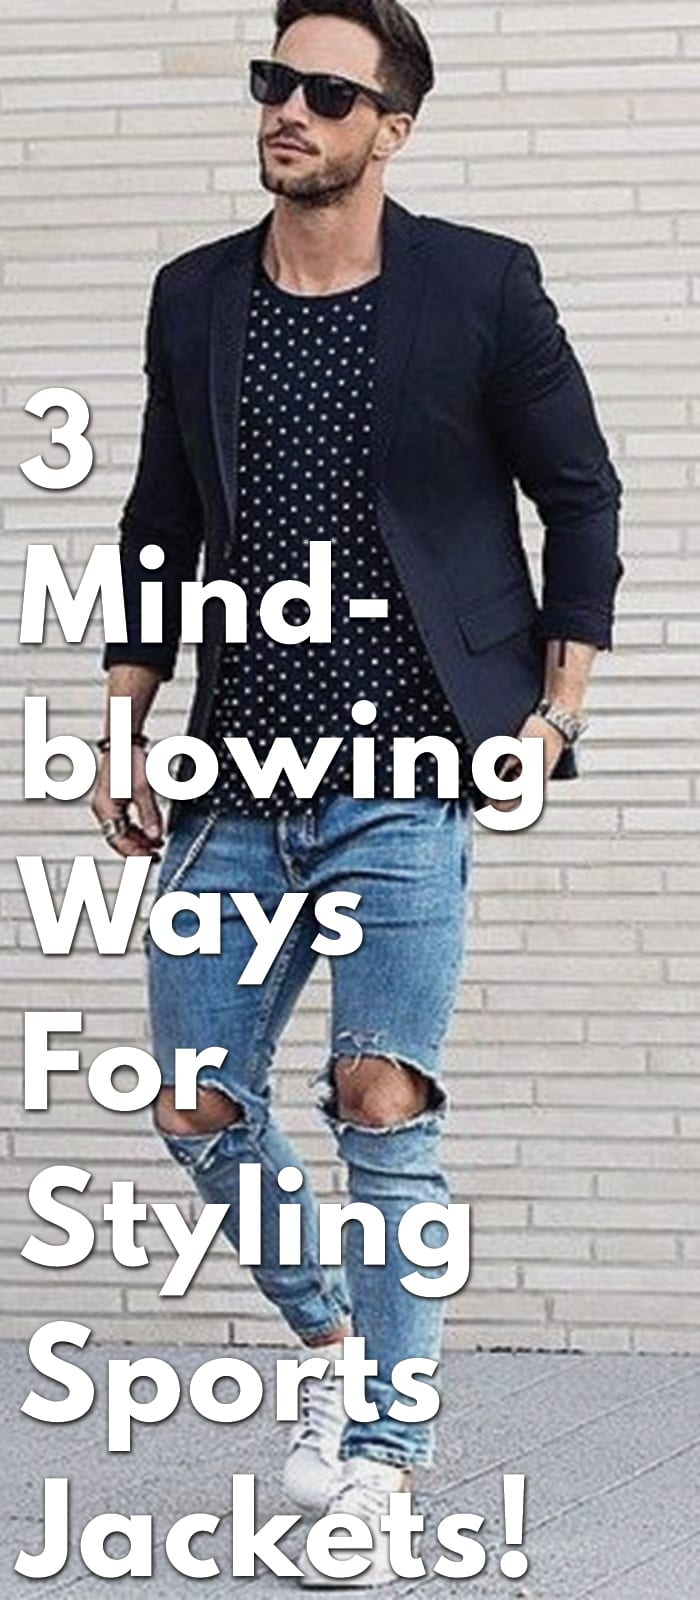 3-Mind-blowing-Ways-for-Styling-Sports-Jackets!